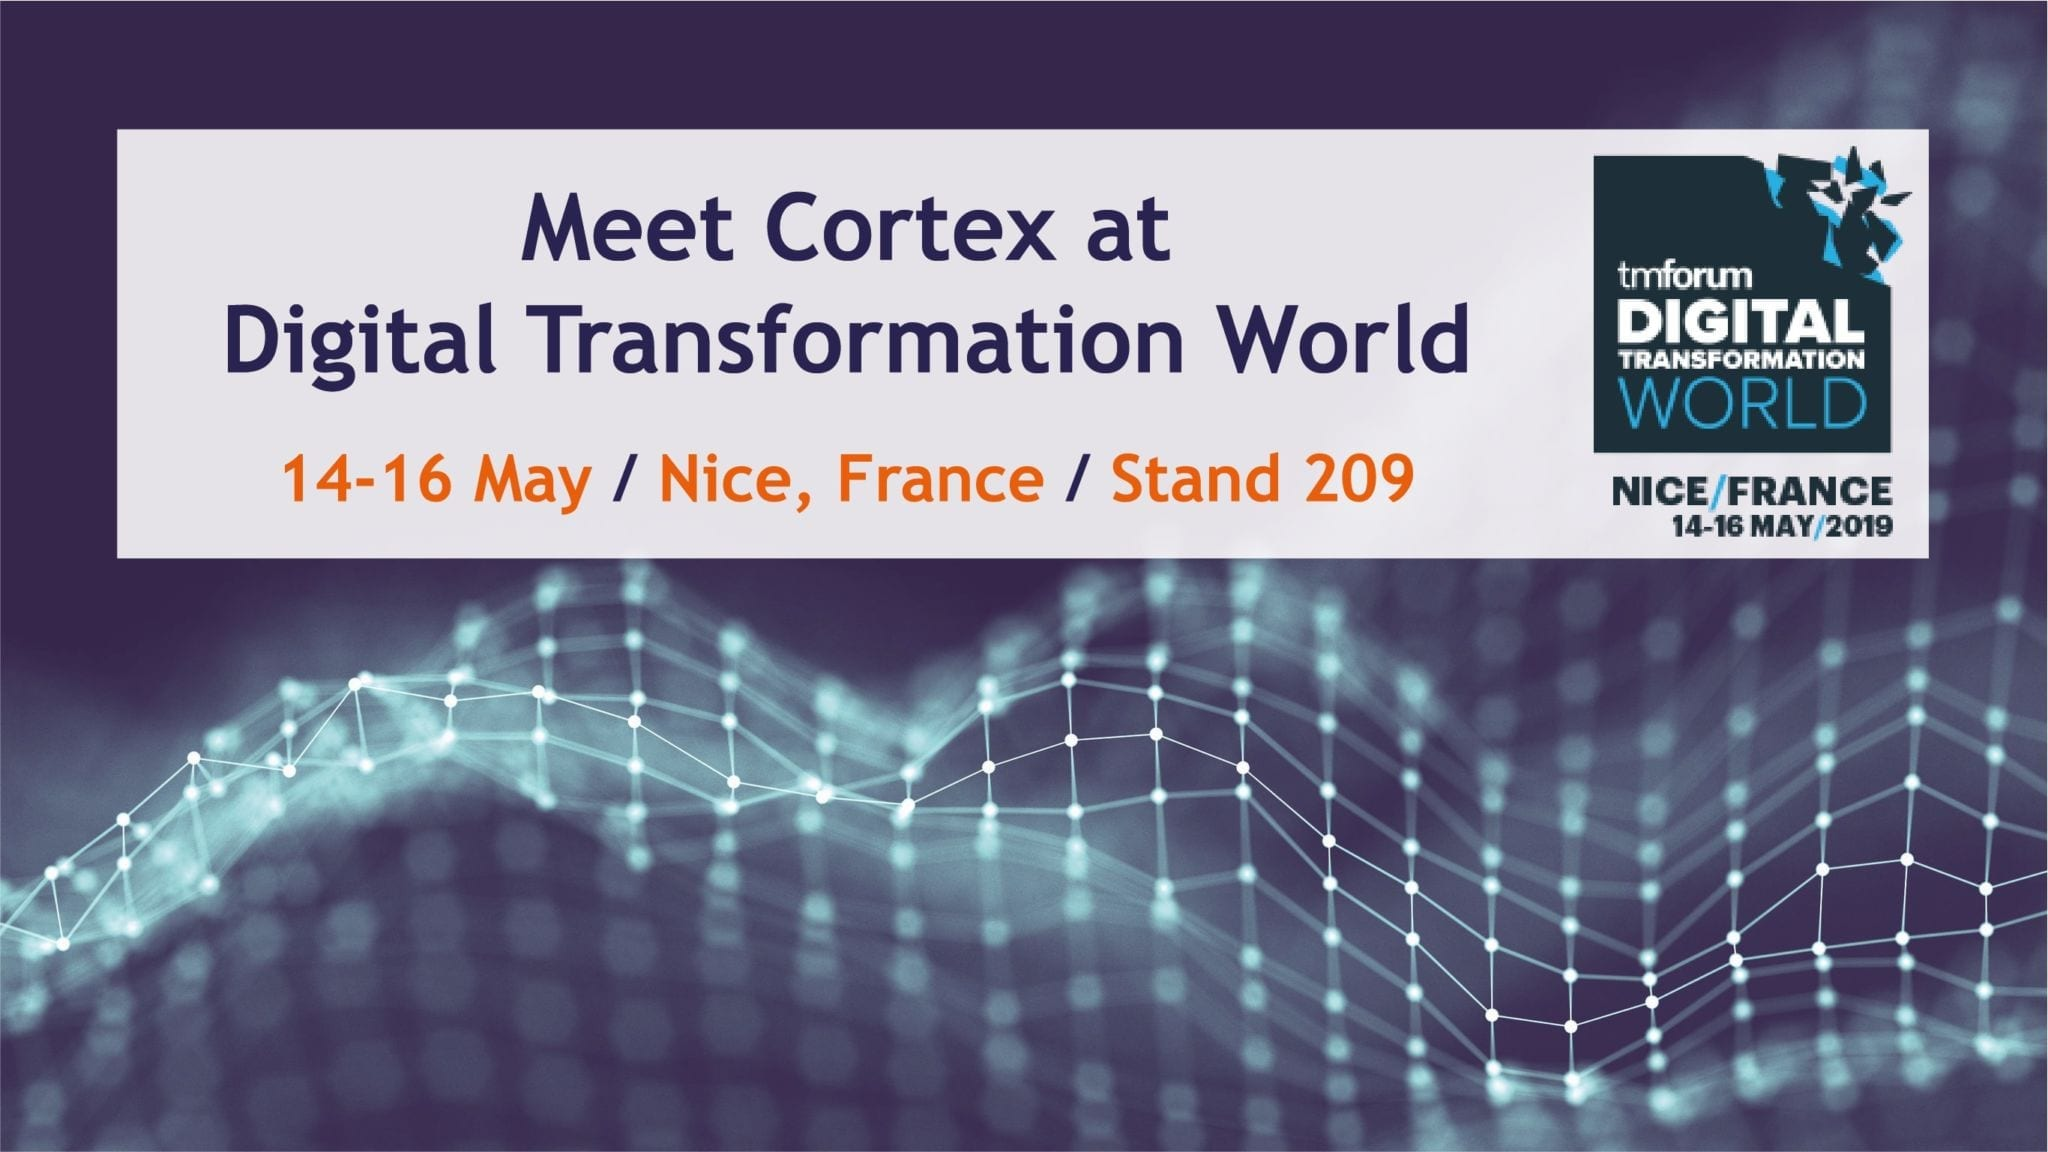 Digital Transformation World 2019